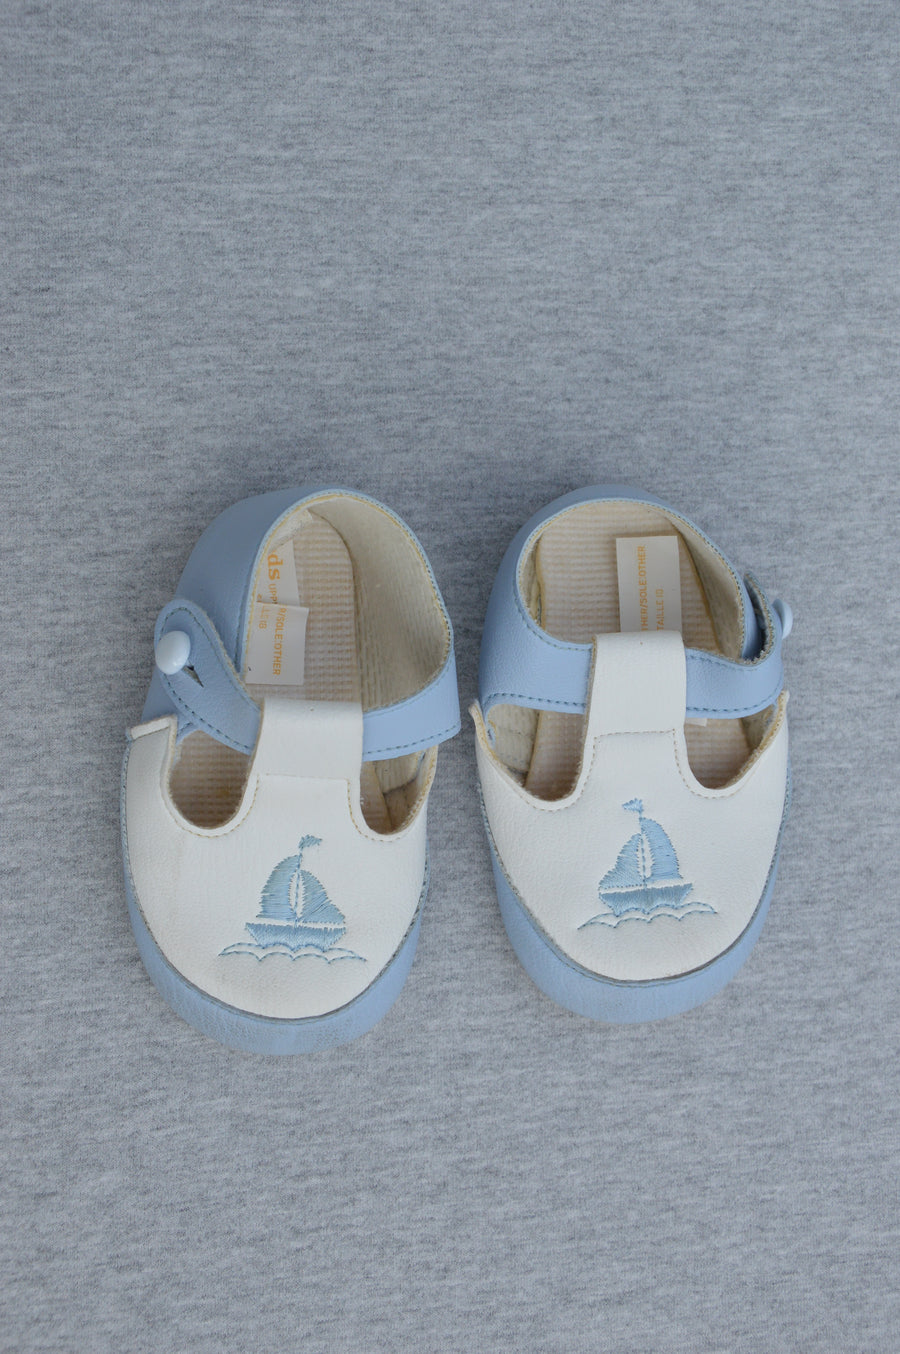 Baypods - brand new - pale blue Prince George shoes, size NZ 2